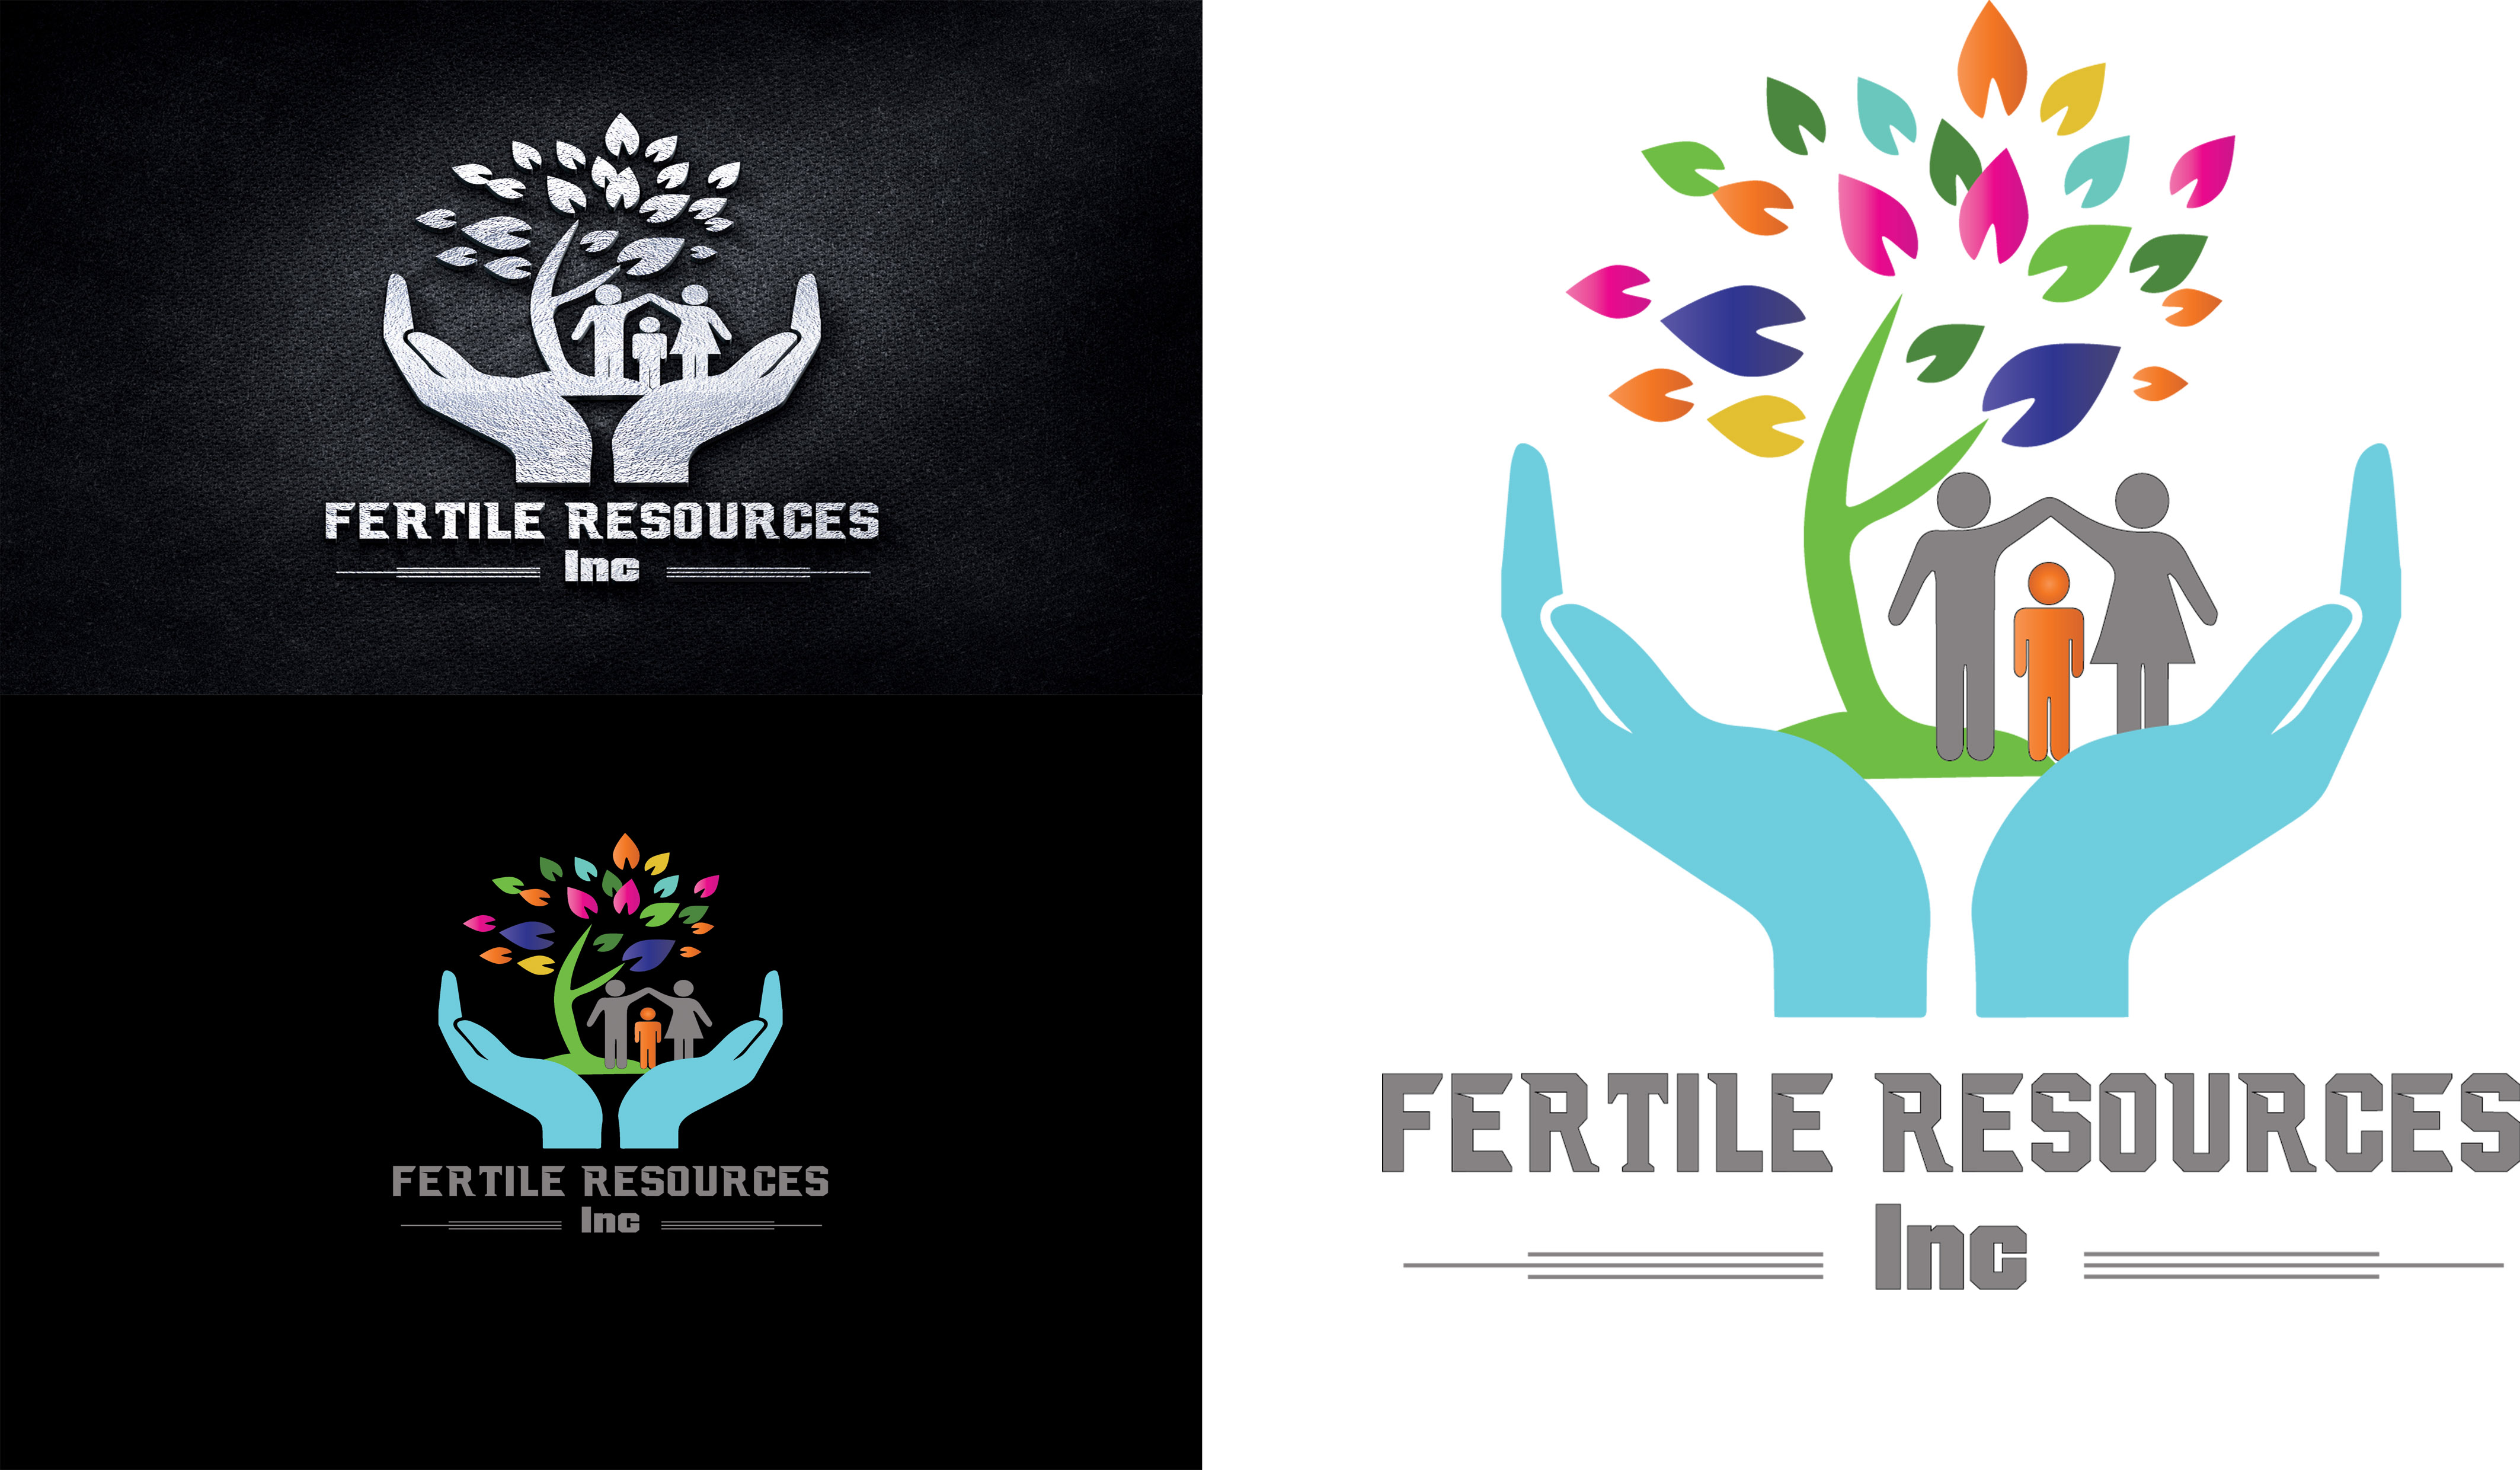 Logo Design by Umair ahmed Iqbal - Entry No. 122 in the Logo Design Contest Fertile Resources, Inc. Logo Design.